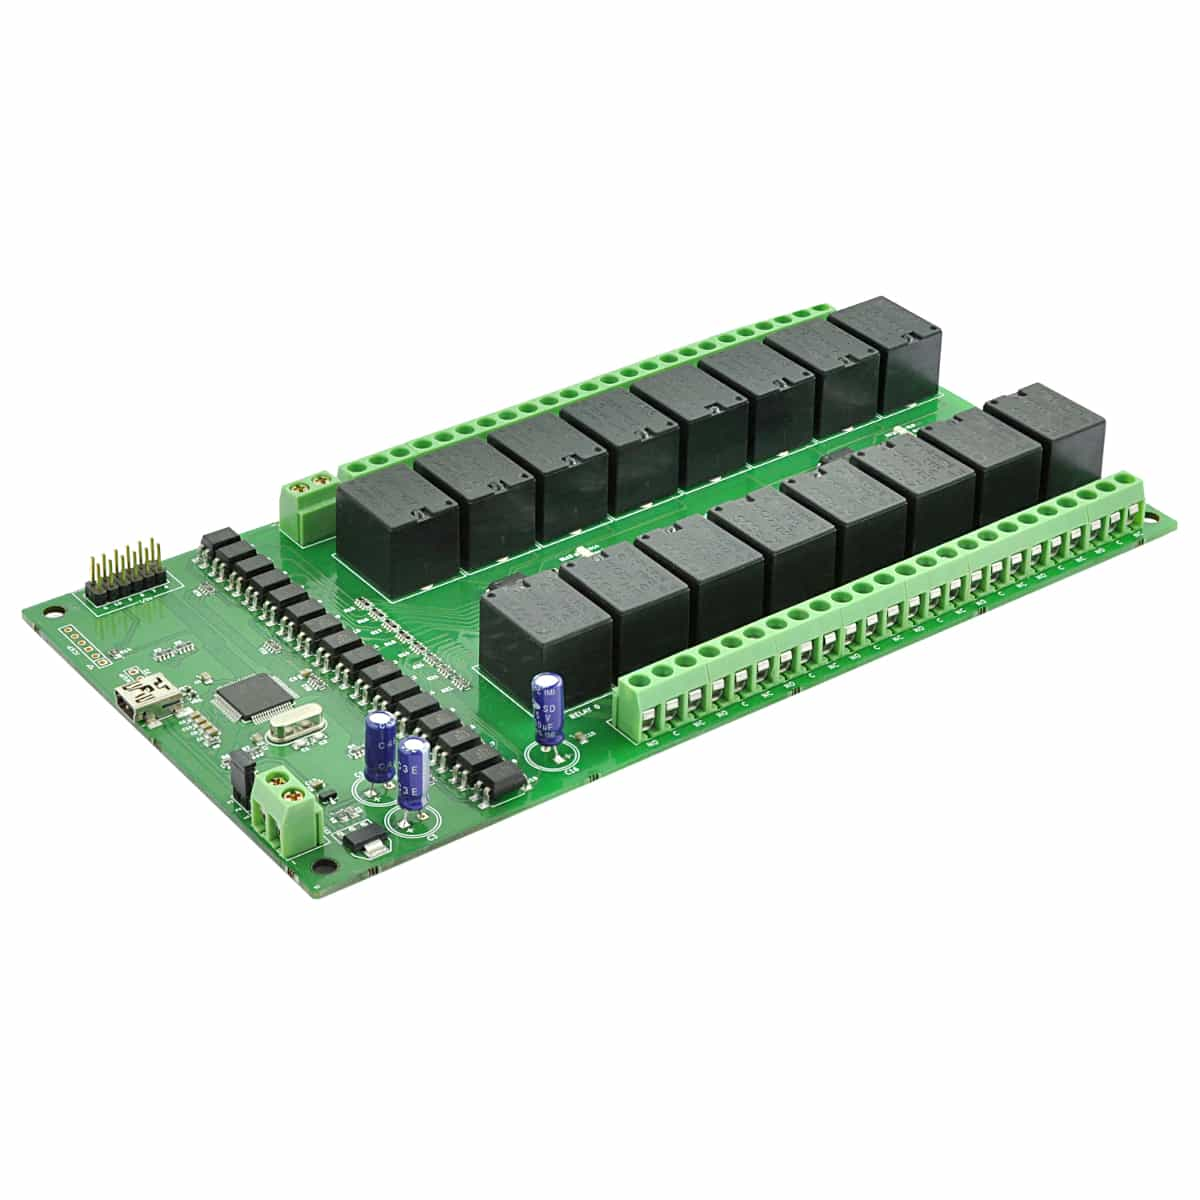 16 Channel Usb Relay Module With Gpio And Inputs Numato Lab 12v Spdt Price